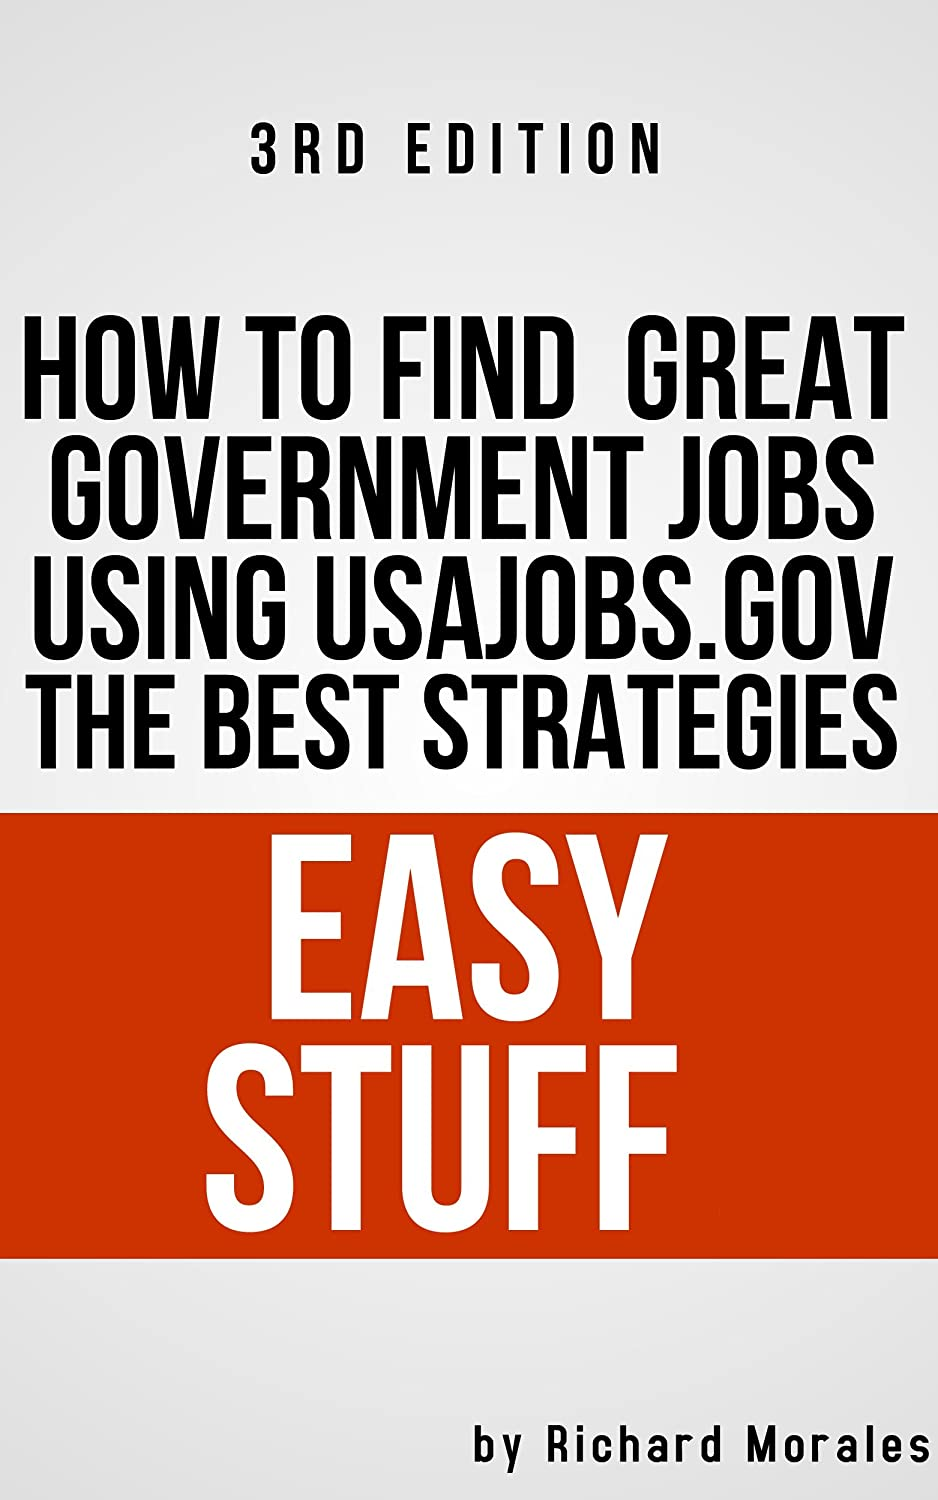 how-to-find-great-government-jobs-using-usajobs-gov-the-best-strategies-easy-stuff